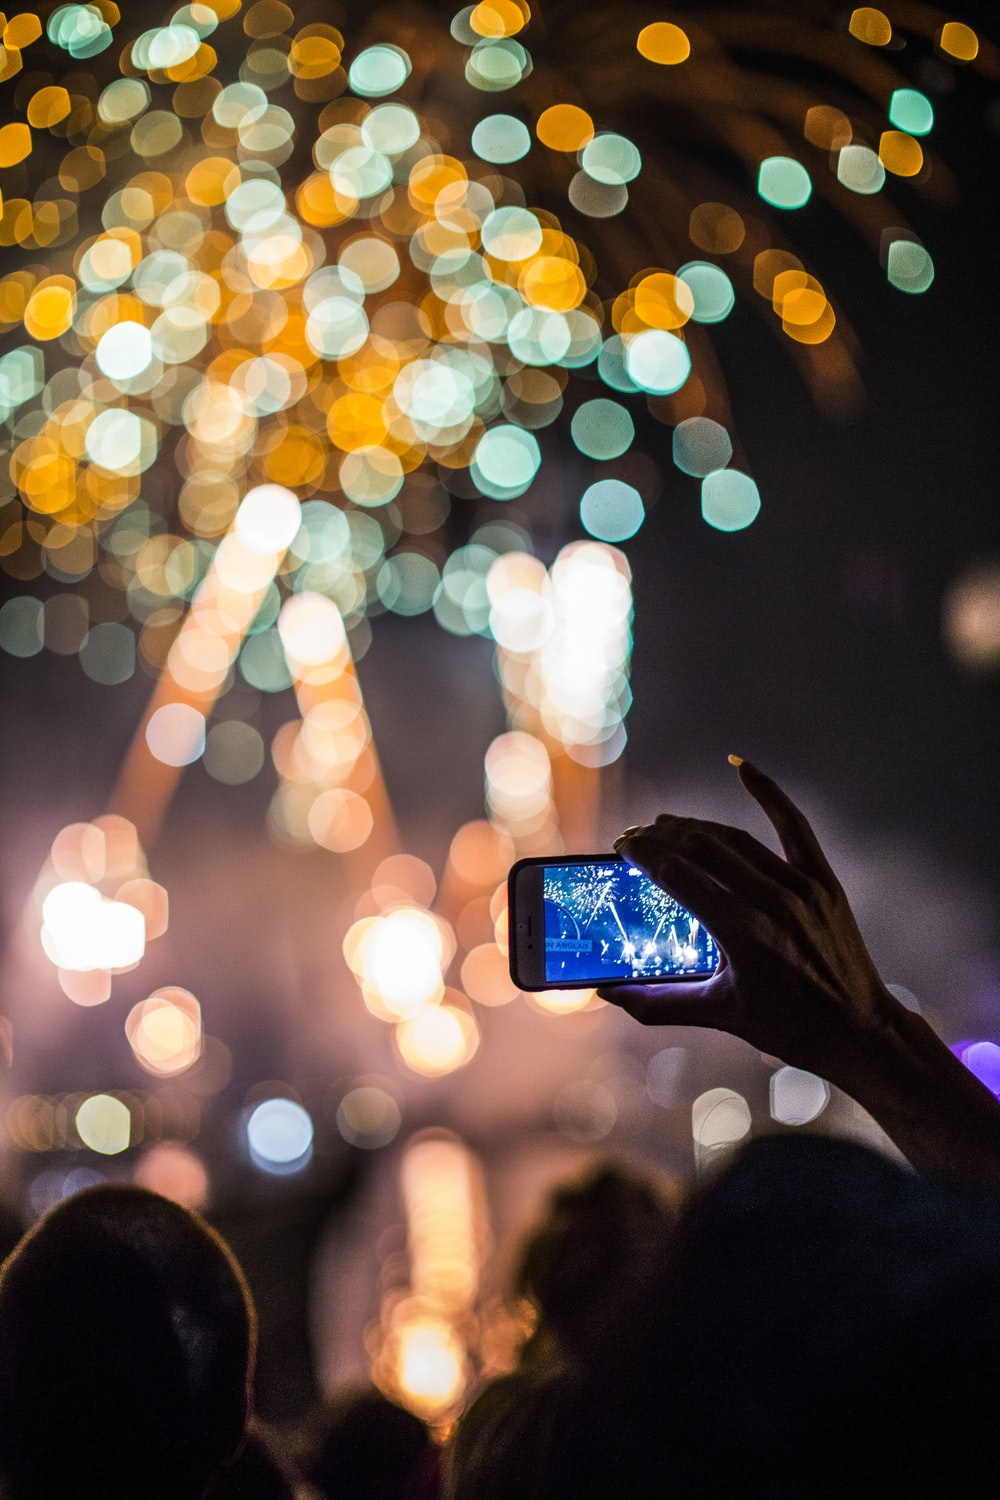 person holding smartphone capturing fireworks